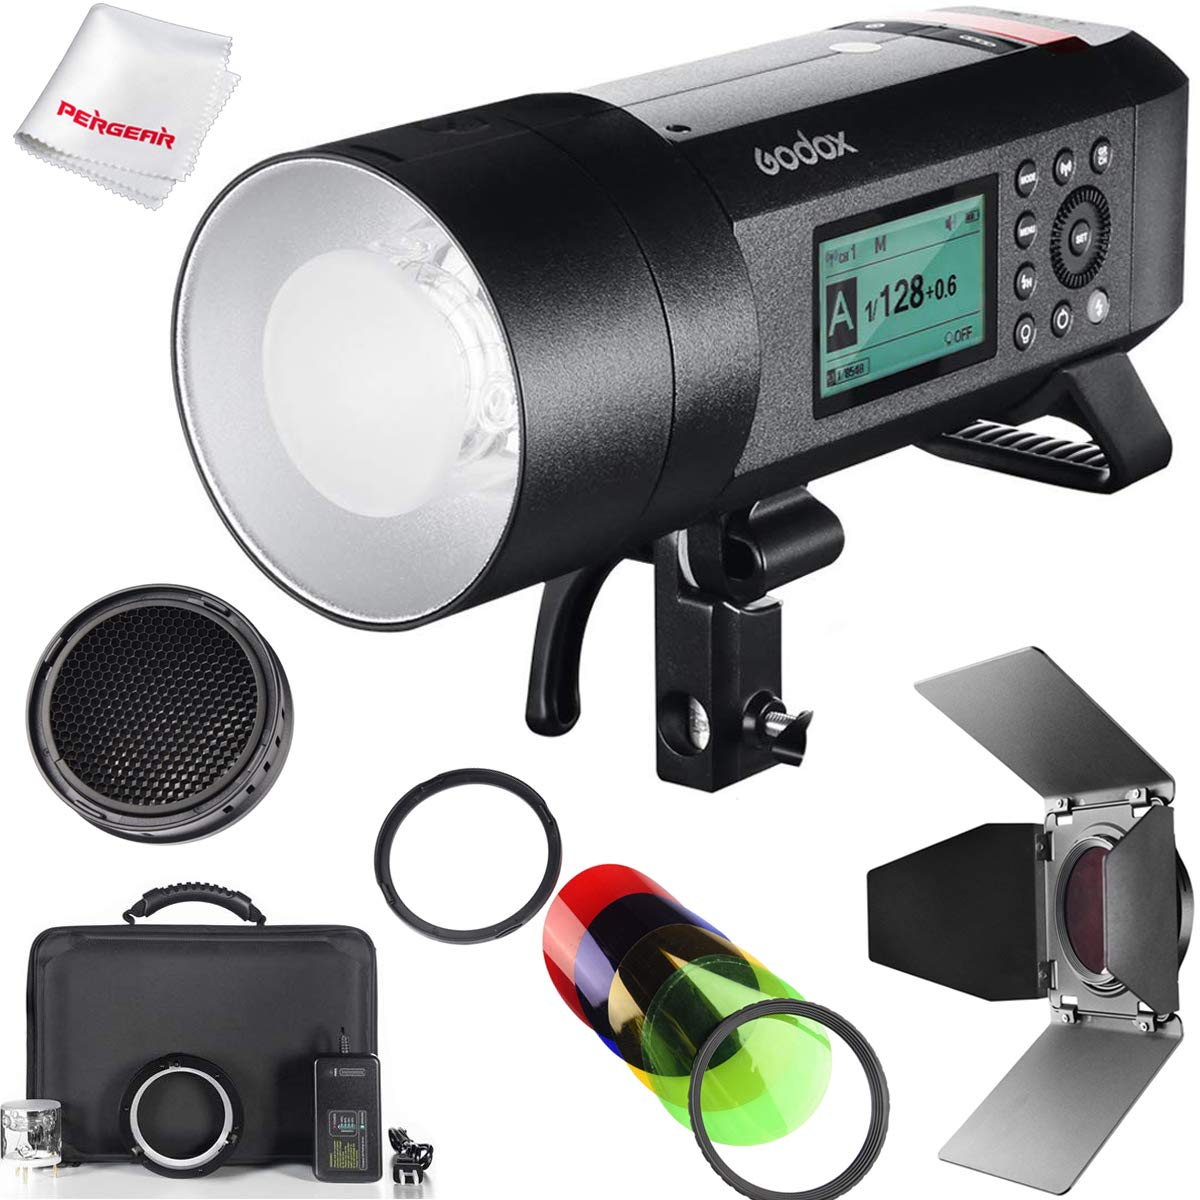 Godox AD400Pro Godox AD400 Pro with Barndoor Honeycomb Grid Color Filter Kit, 400W GN72 2.4G TTL Flash Strobe, 1/8000 HSS, 390 Full Power Pops, 0.01-1s Recycle Time, 30w LED Modeling Lamp by Godox